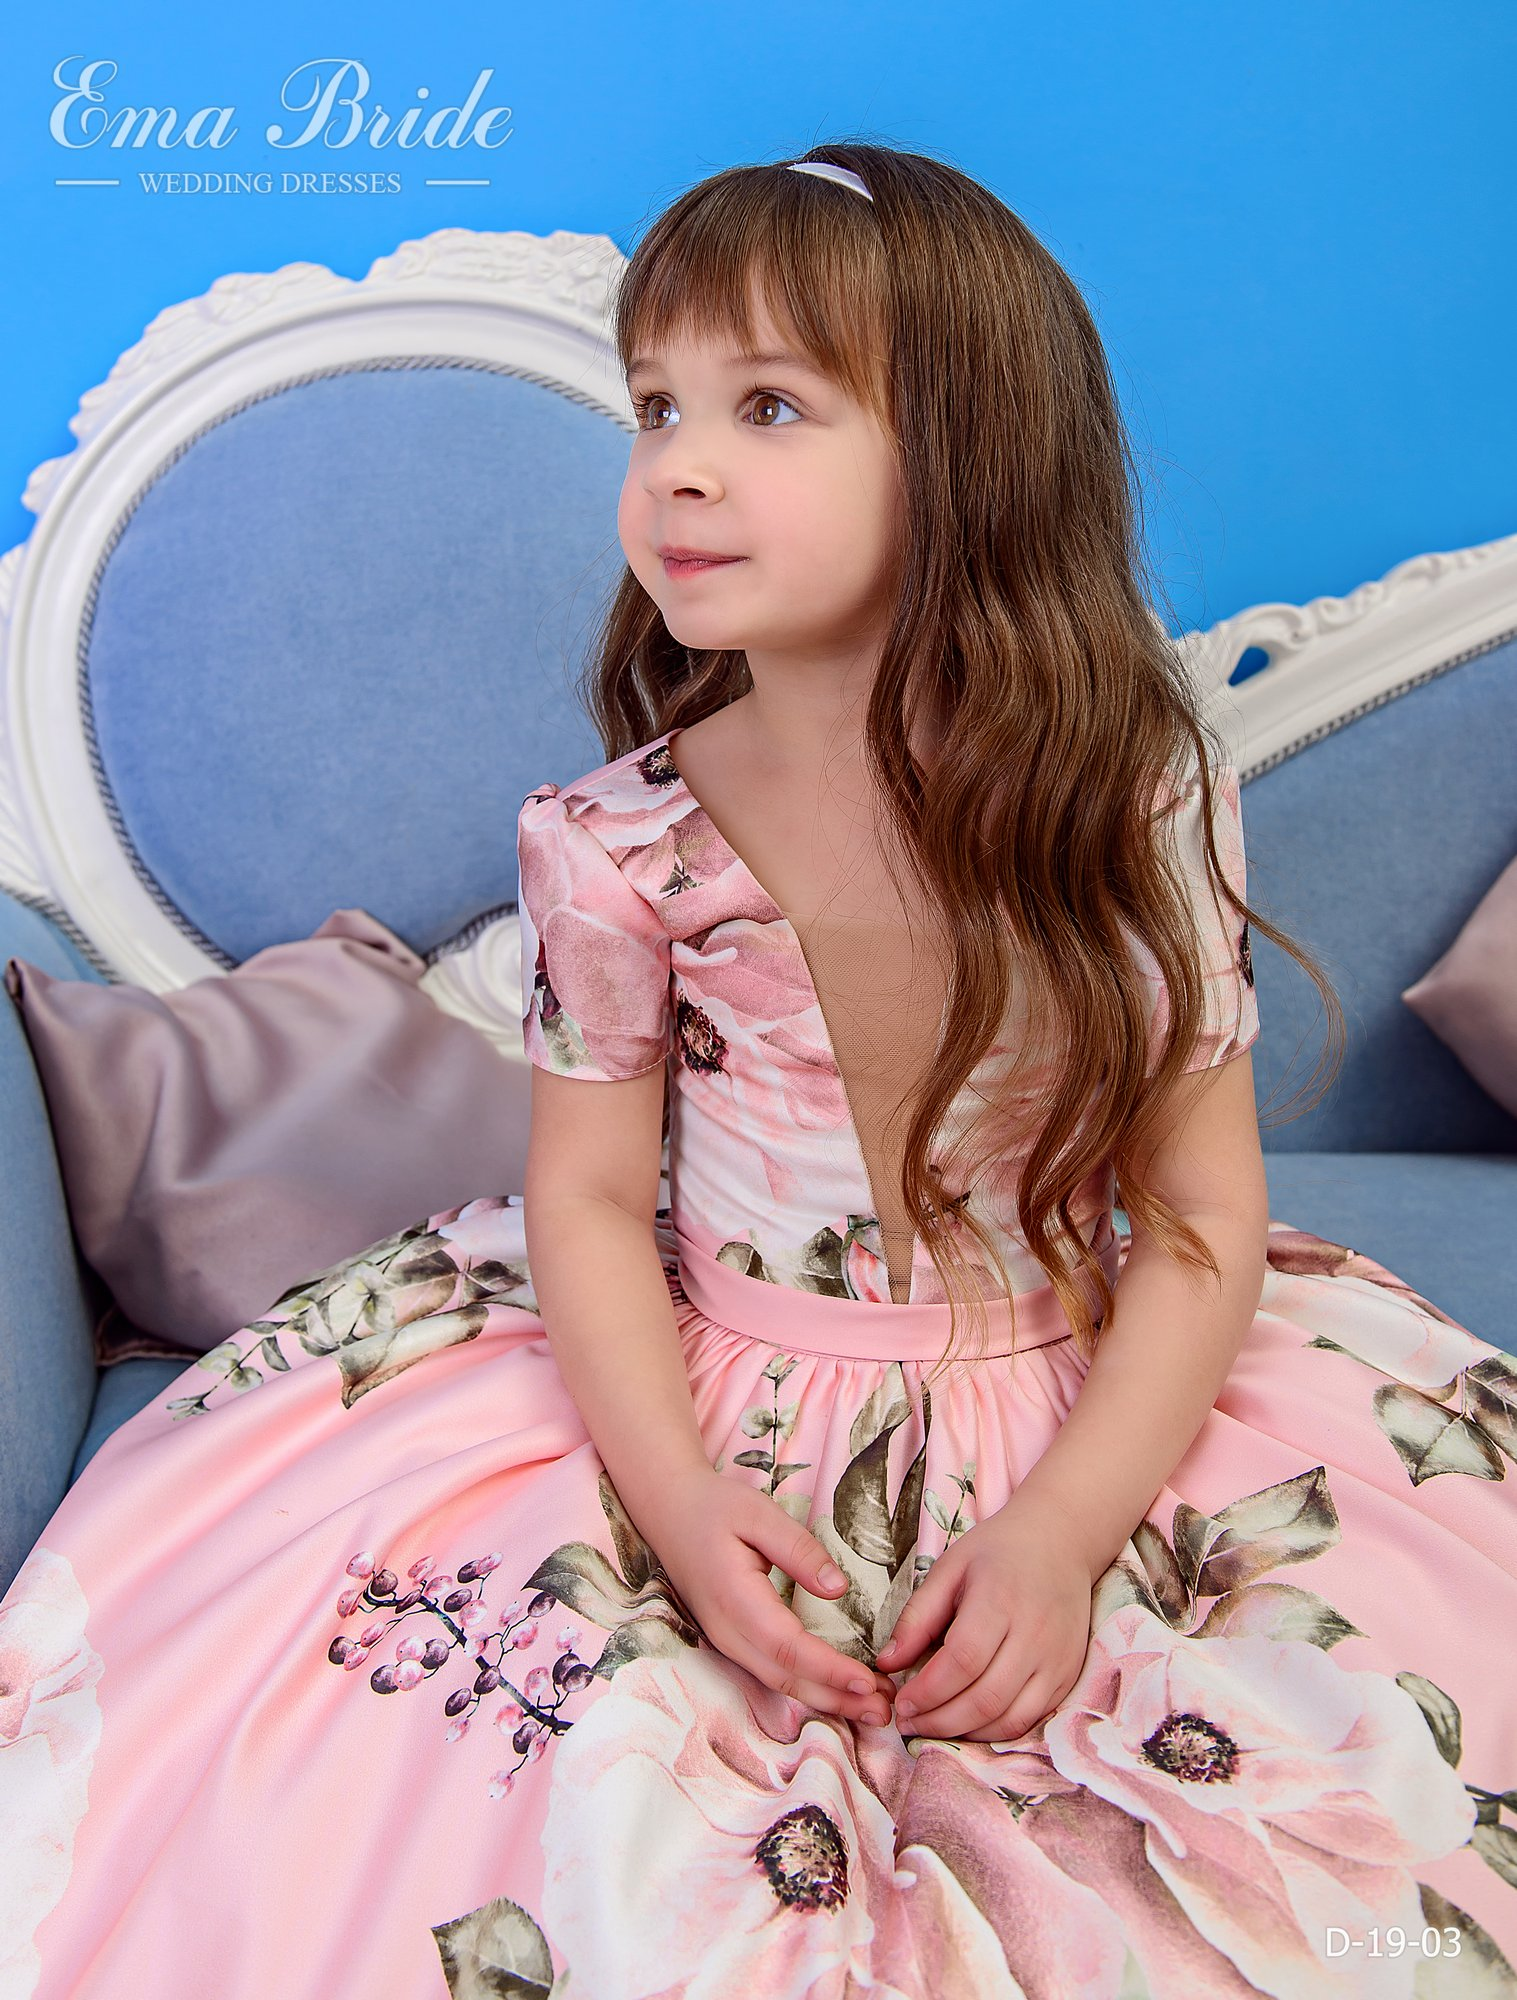 Children's dress by EmaBride D-19-03 2019-1